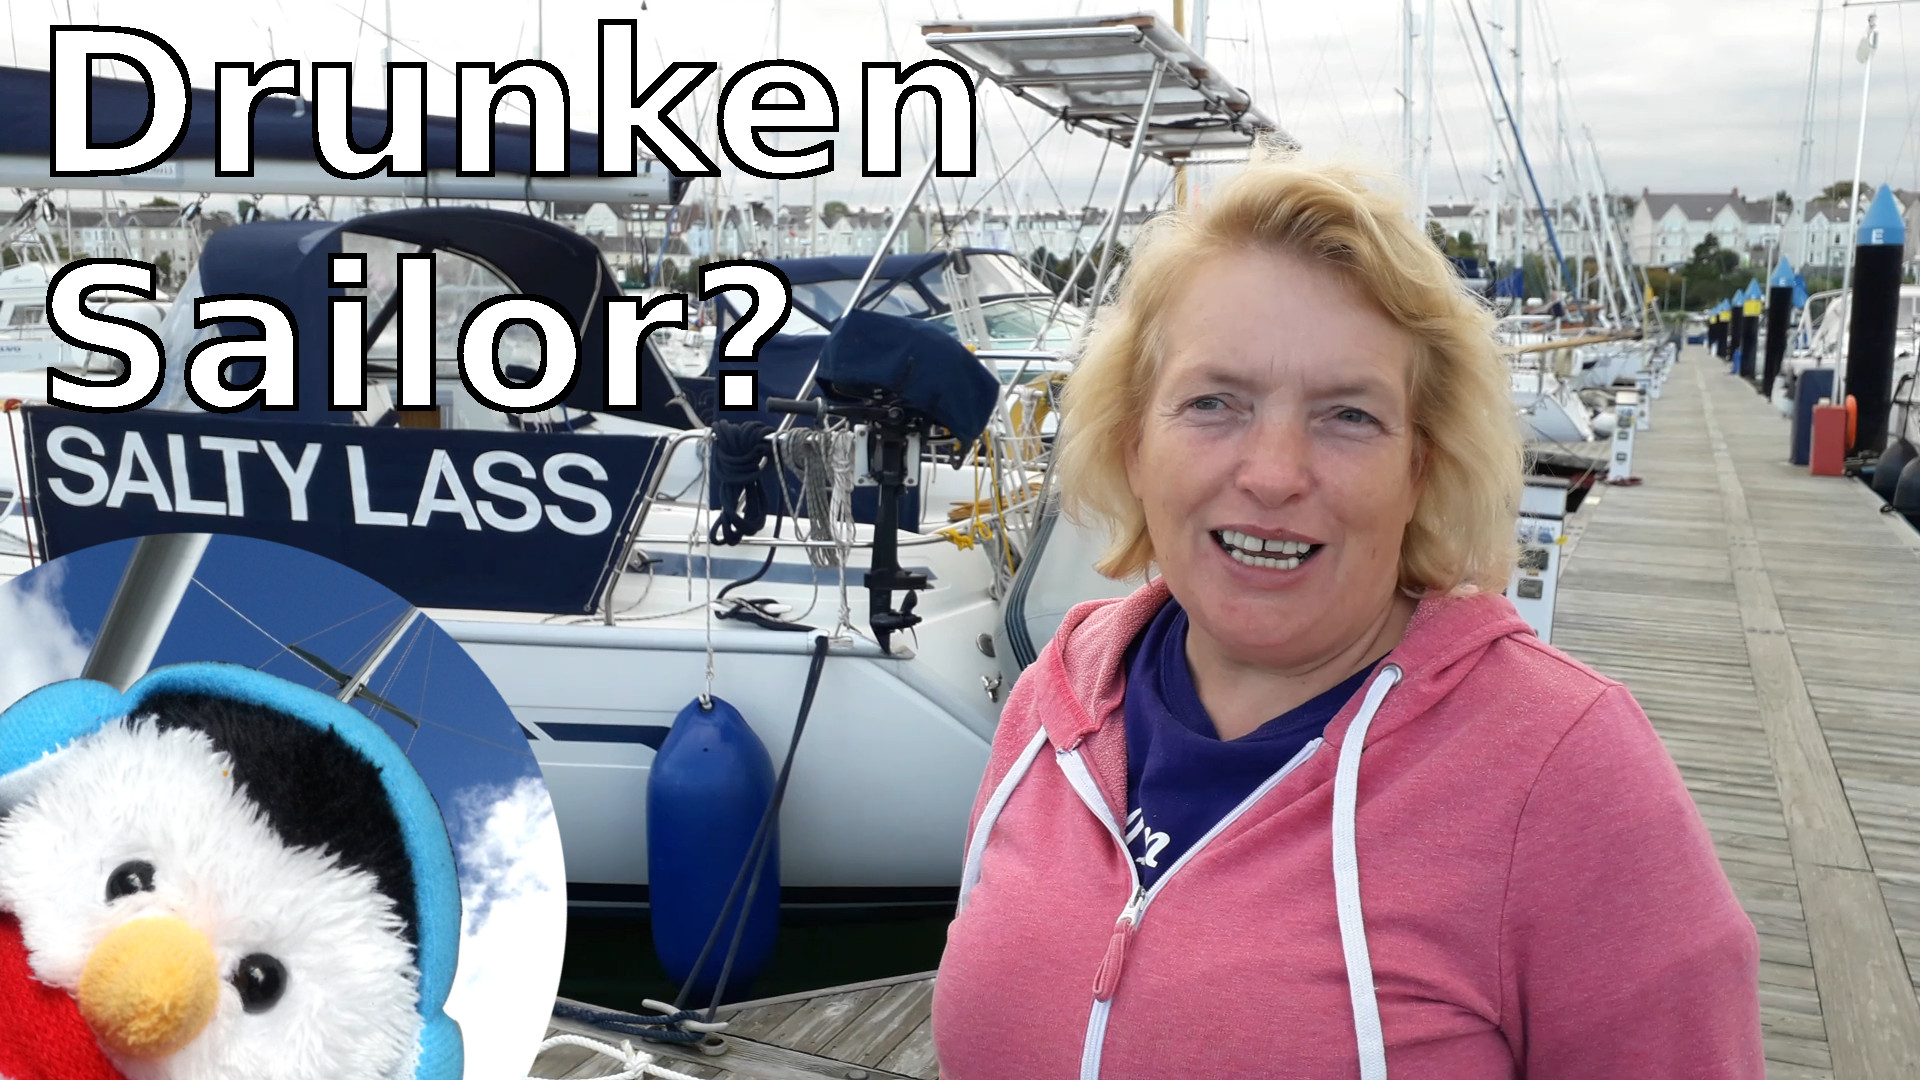 Watch our 'Drunken Sailor' episode and leave comments etc.